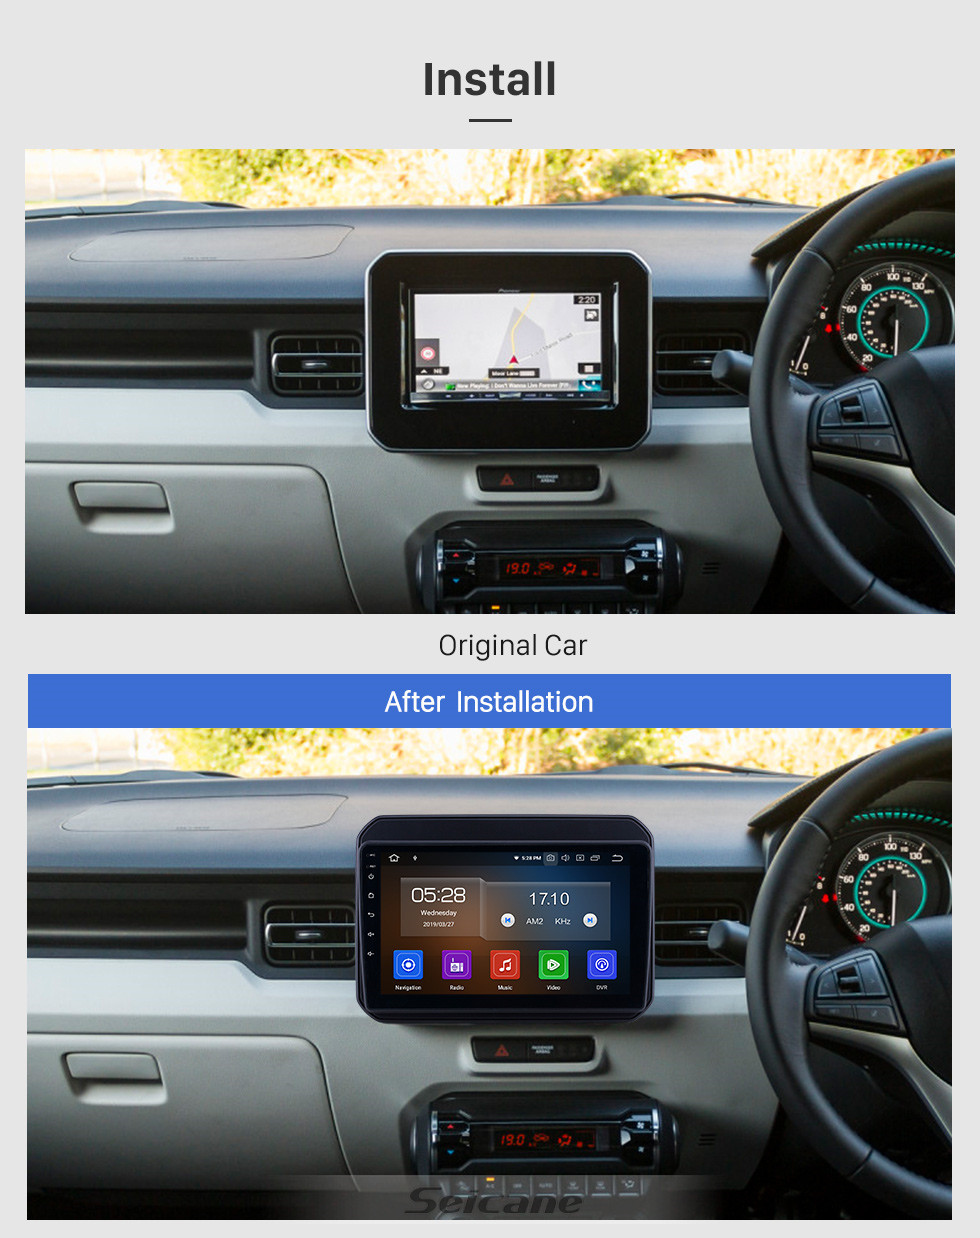 Seicane All in one Android 10.0 9 inch 2016-2019 Suzuki Ignis Radio with GPS Navigation Touchscreen Carplay Bluetooth USB AUX support Mirror Link 1080P Video